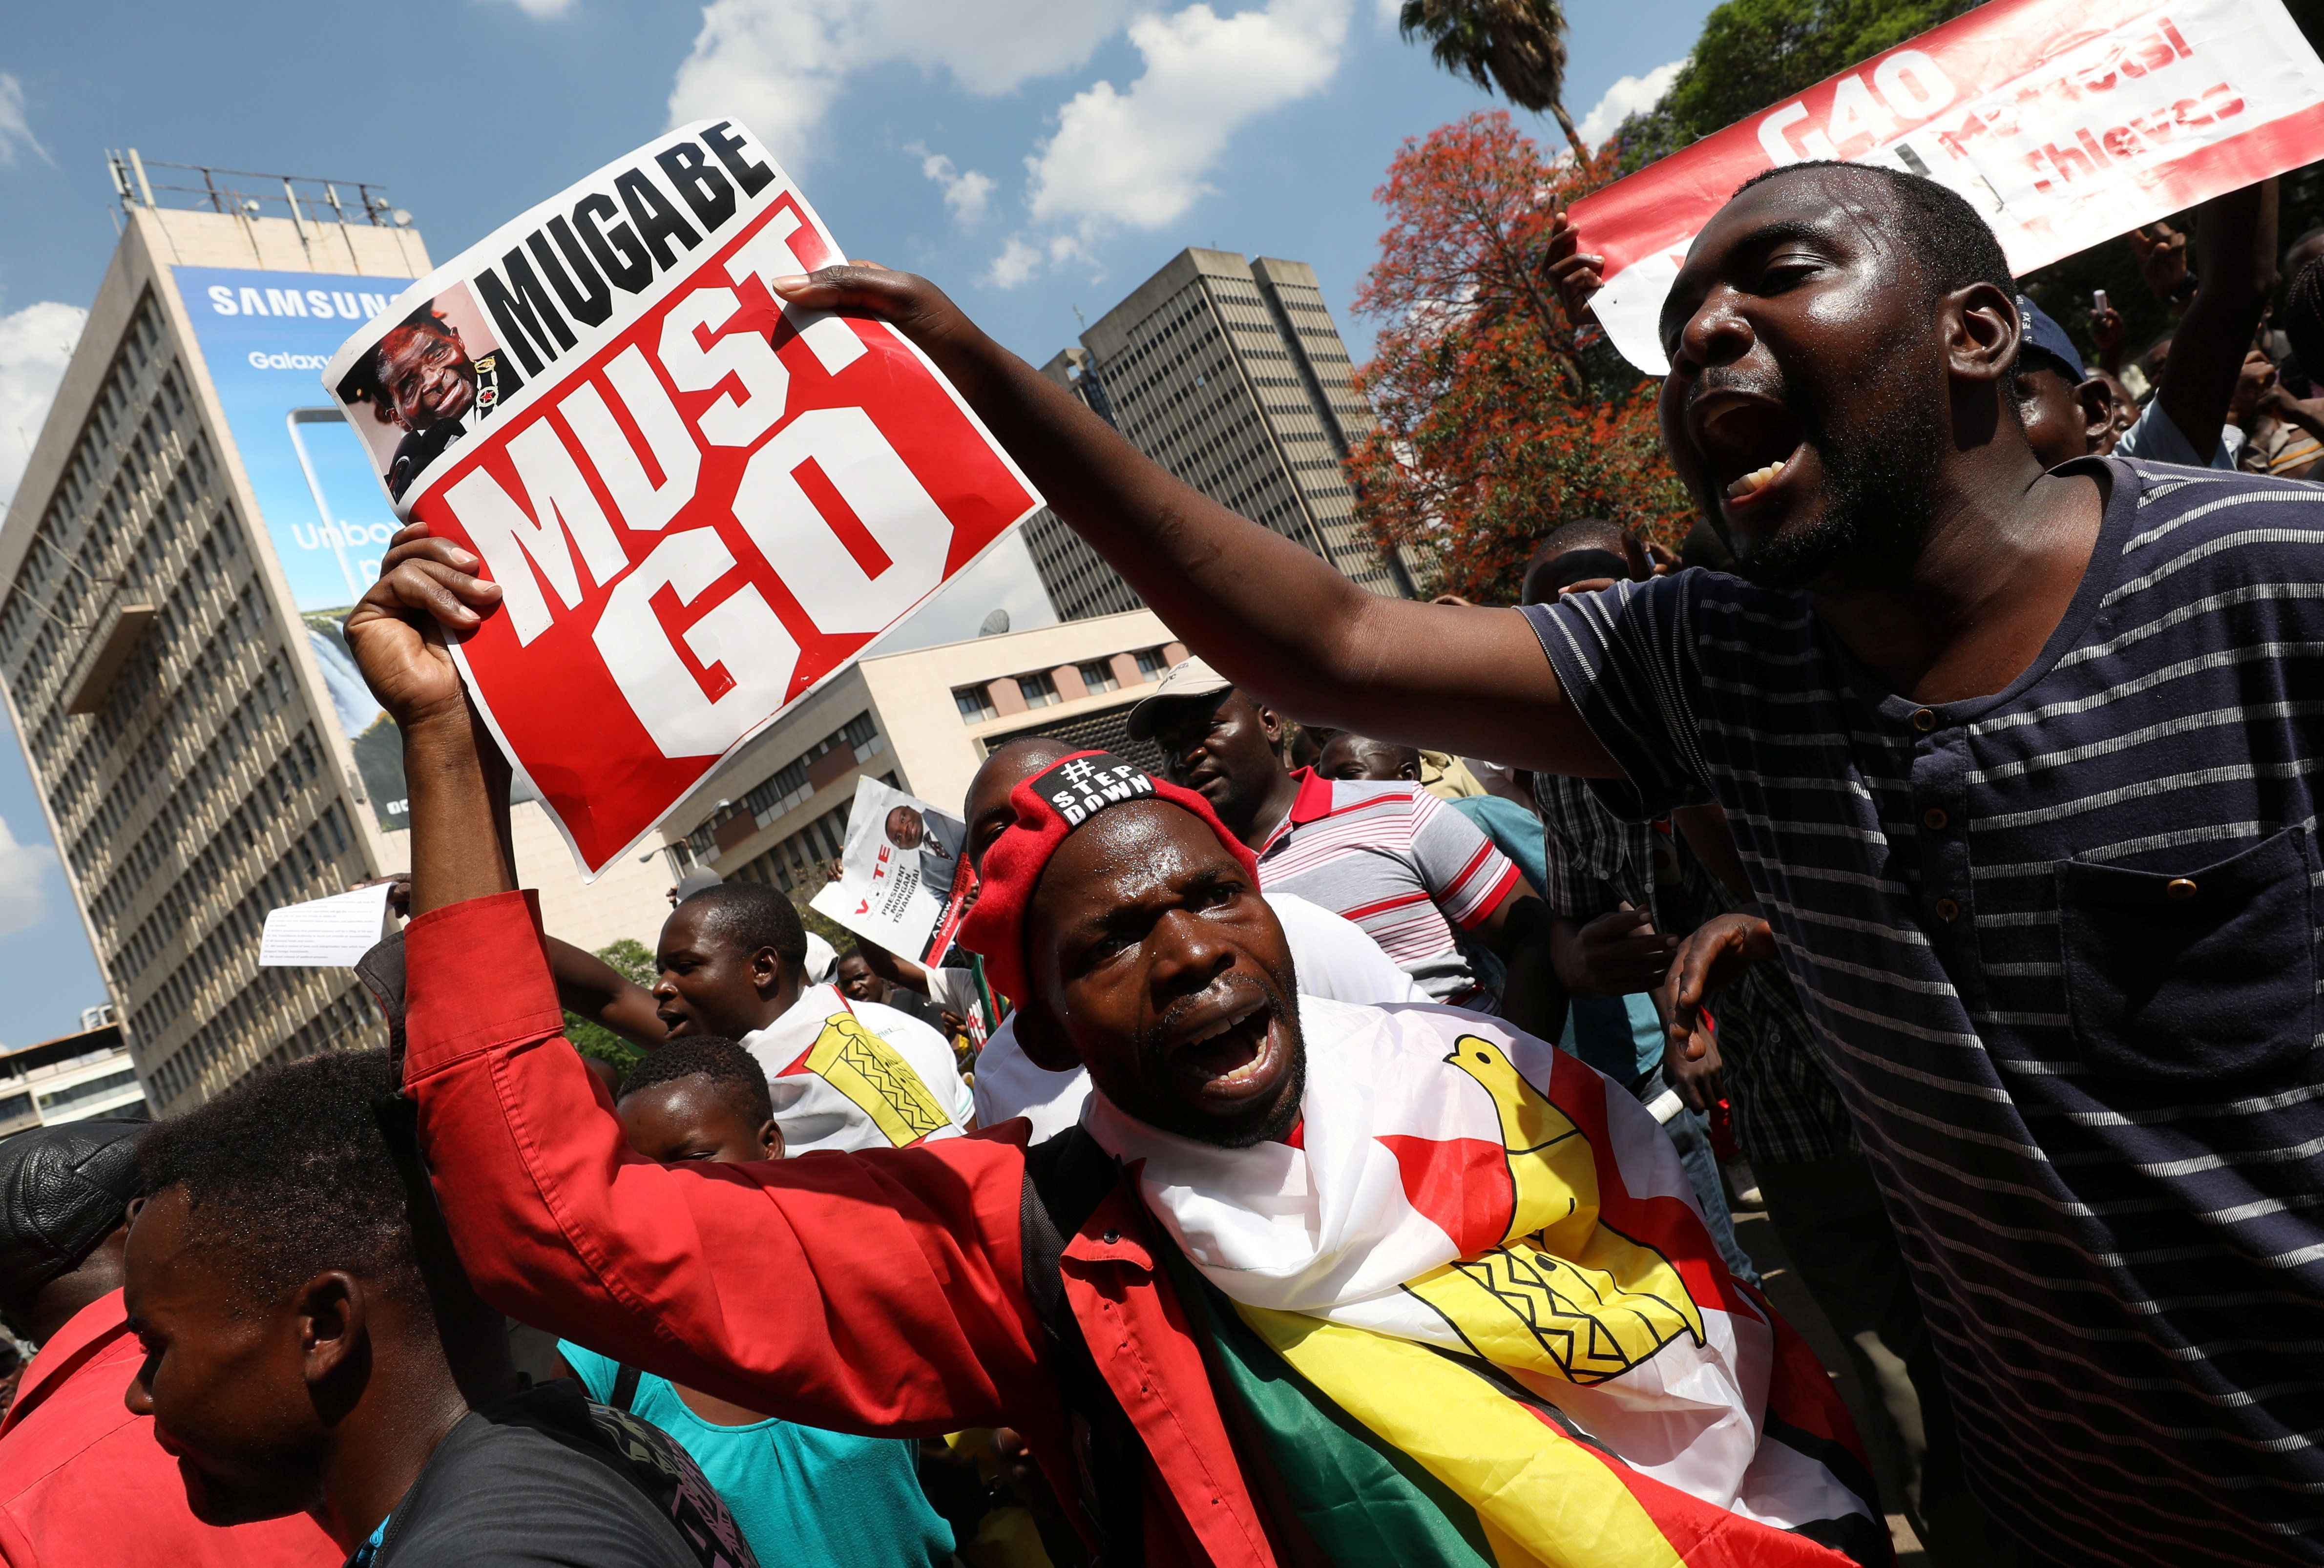 Protesters calling for Zimbabwean President Robert Mugabe to resign demonstrate outside parliament in Harare, Zimbabwe, November 21, 2017. REUTERS/Mike Hutchings